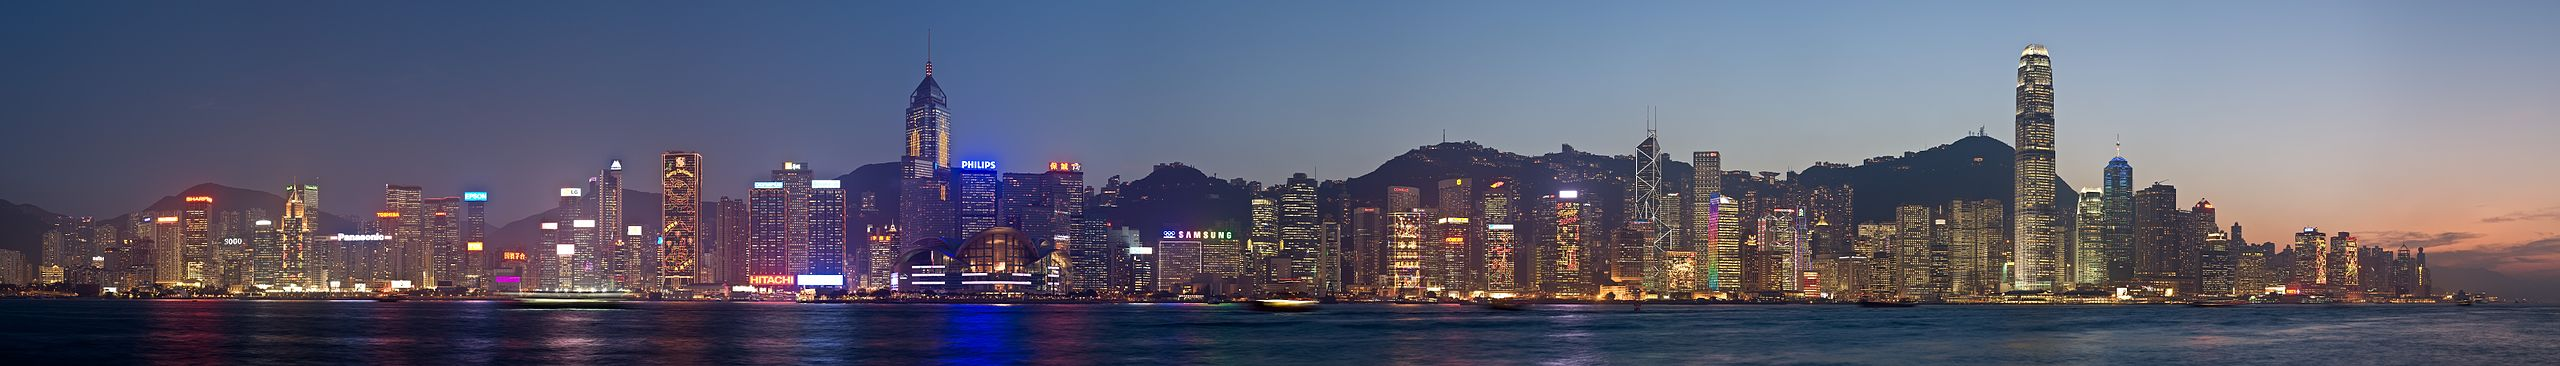 ce465ac6ce3c Hong Kong – Travel guide at Wikivoyage